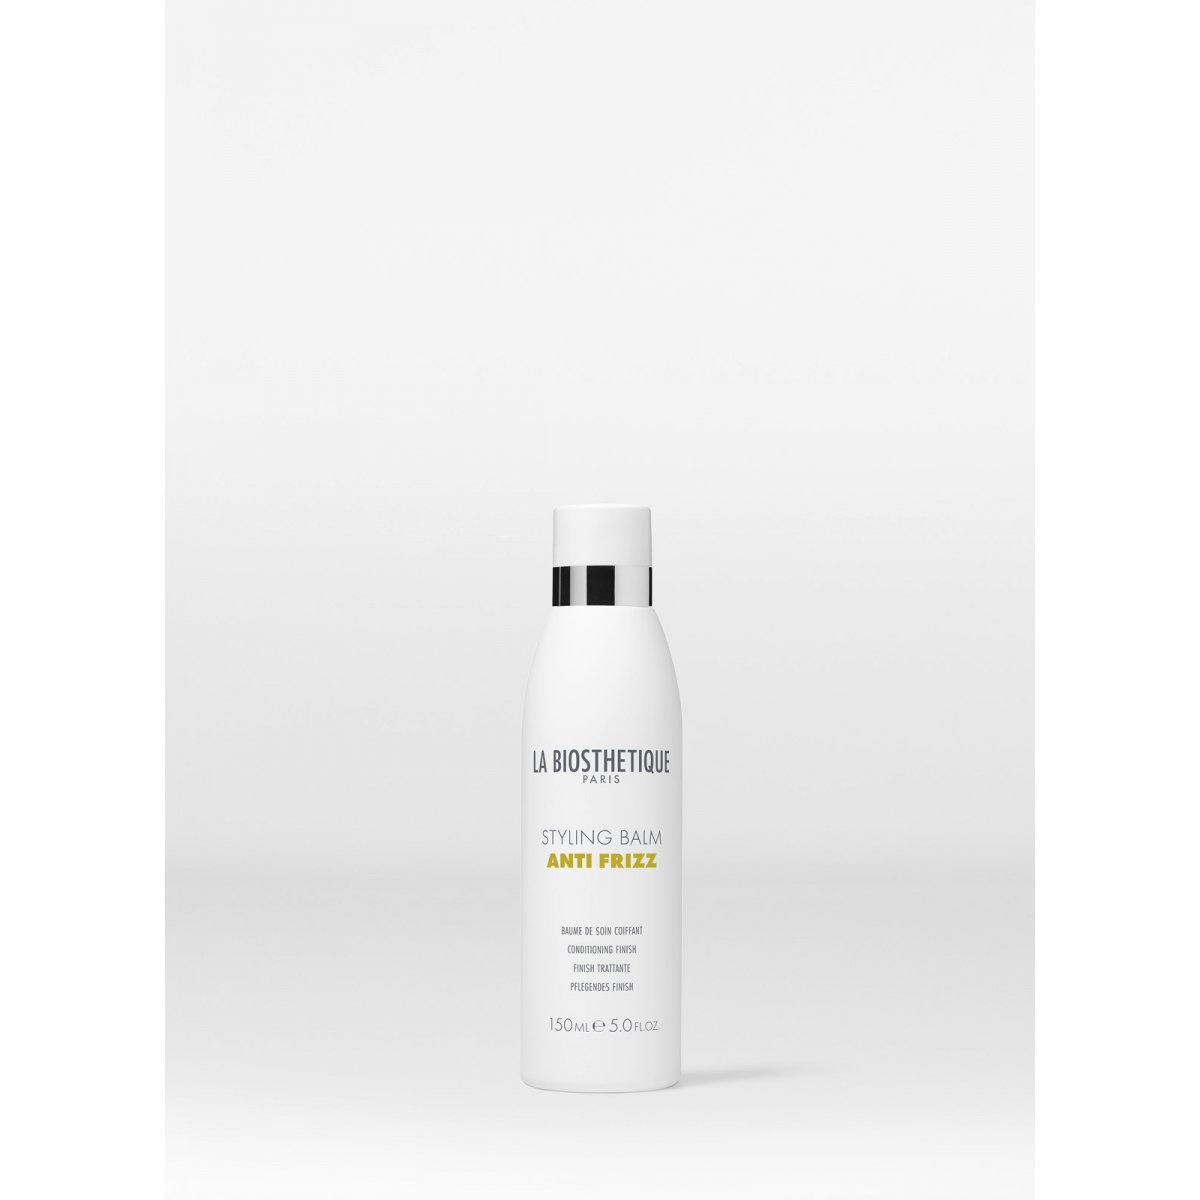 Styling Balm Anti Frizz